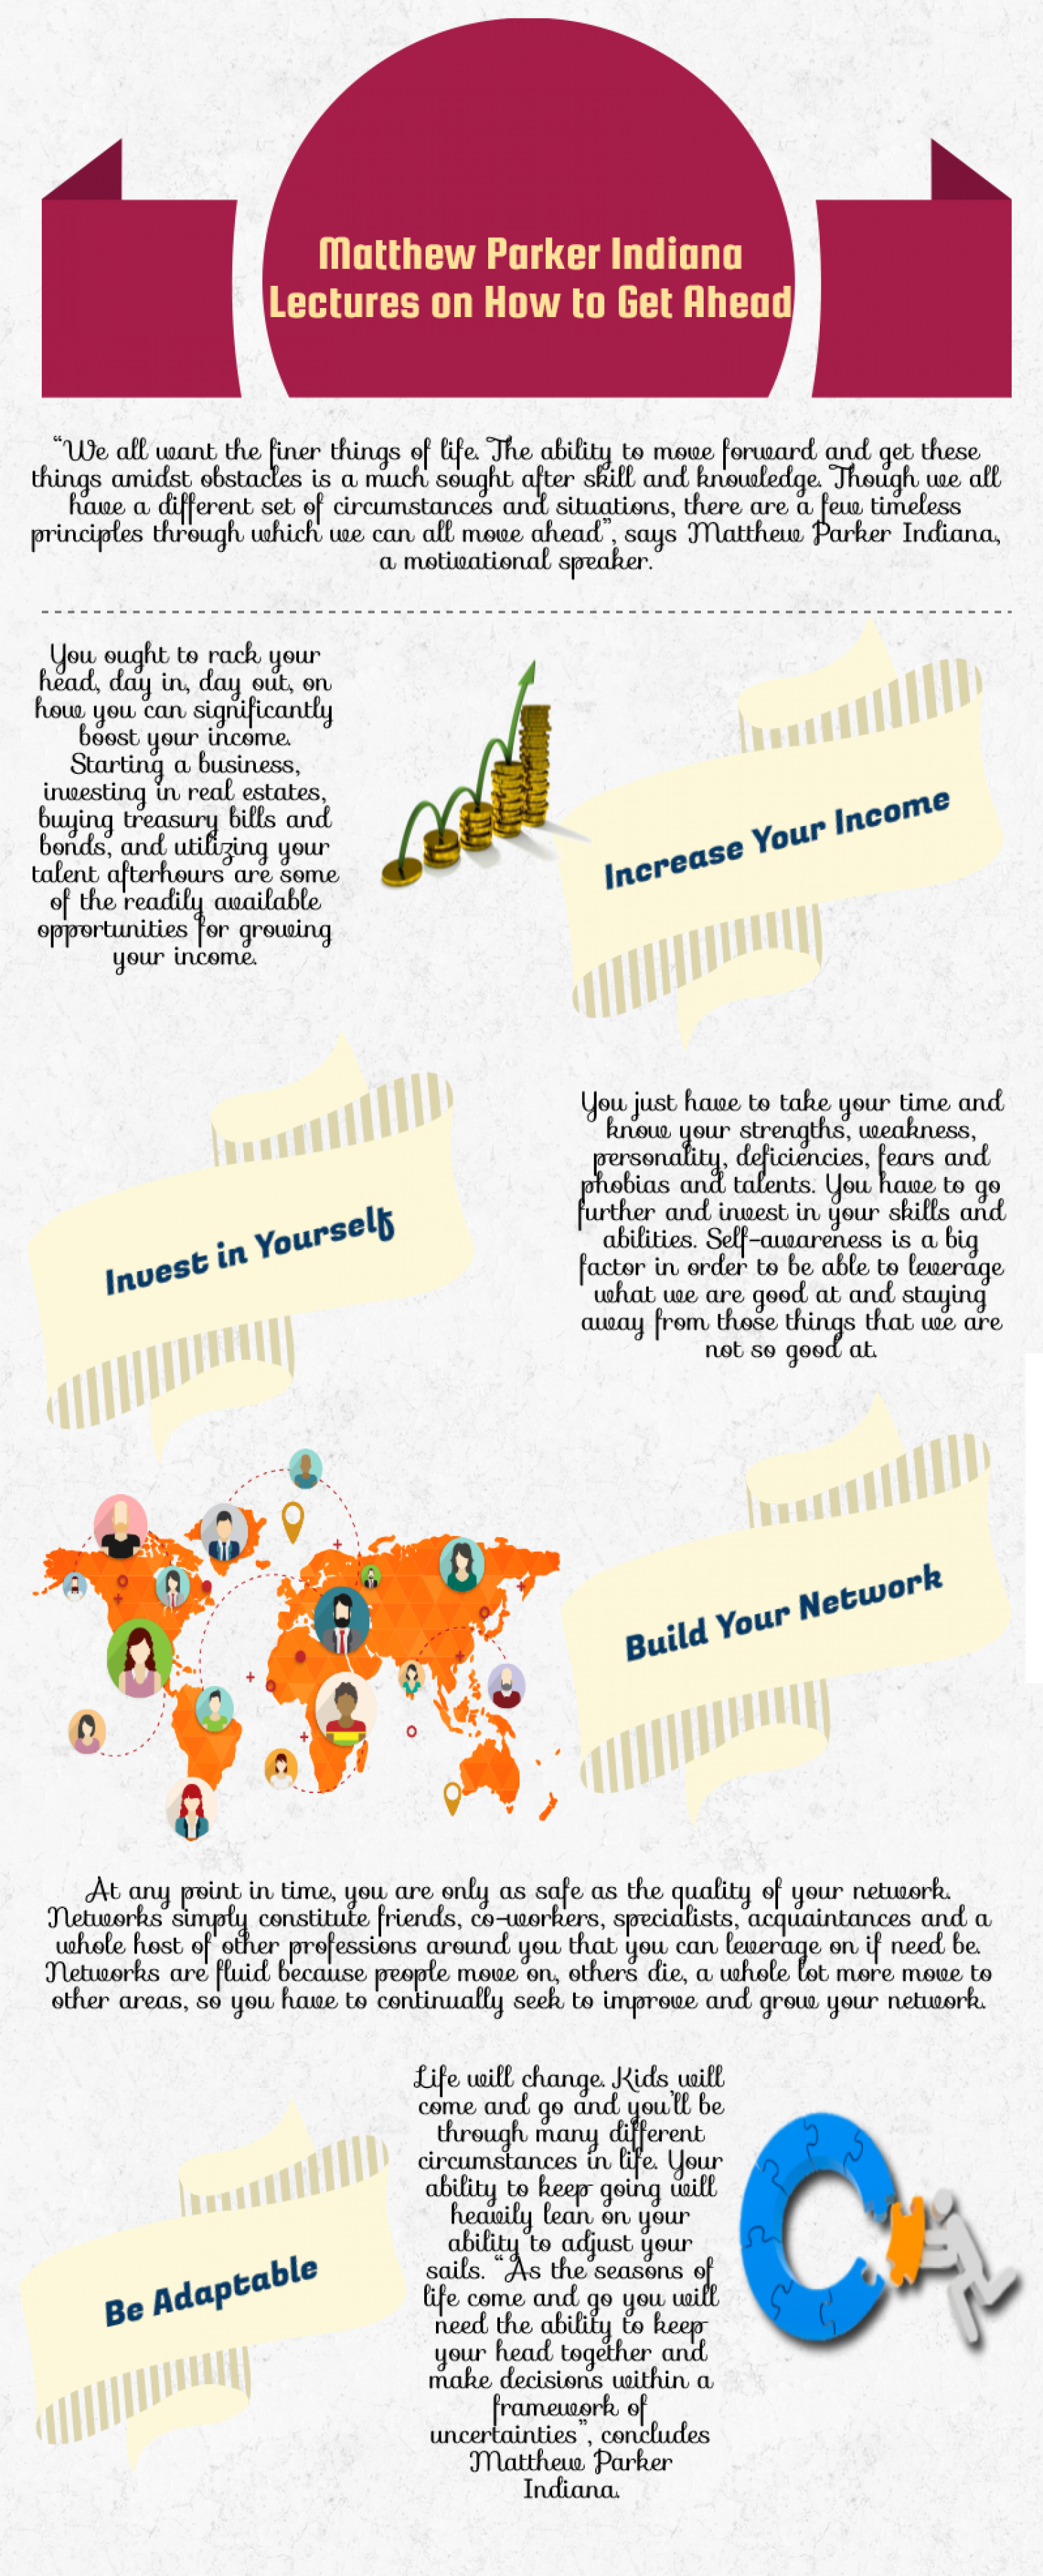 Matthew Parker Indiana Lectures on How to Get Ahead Infographic